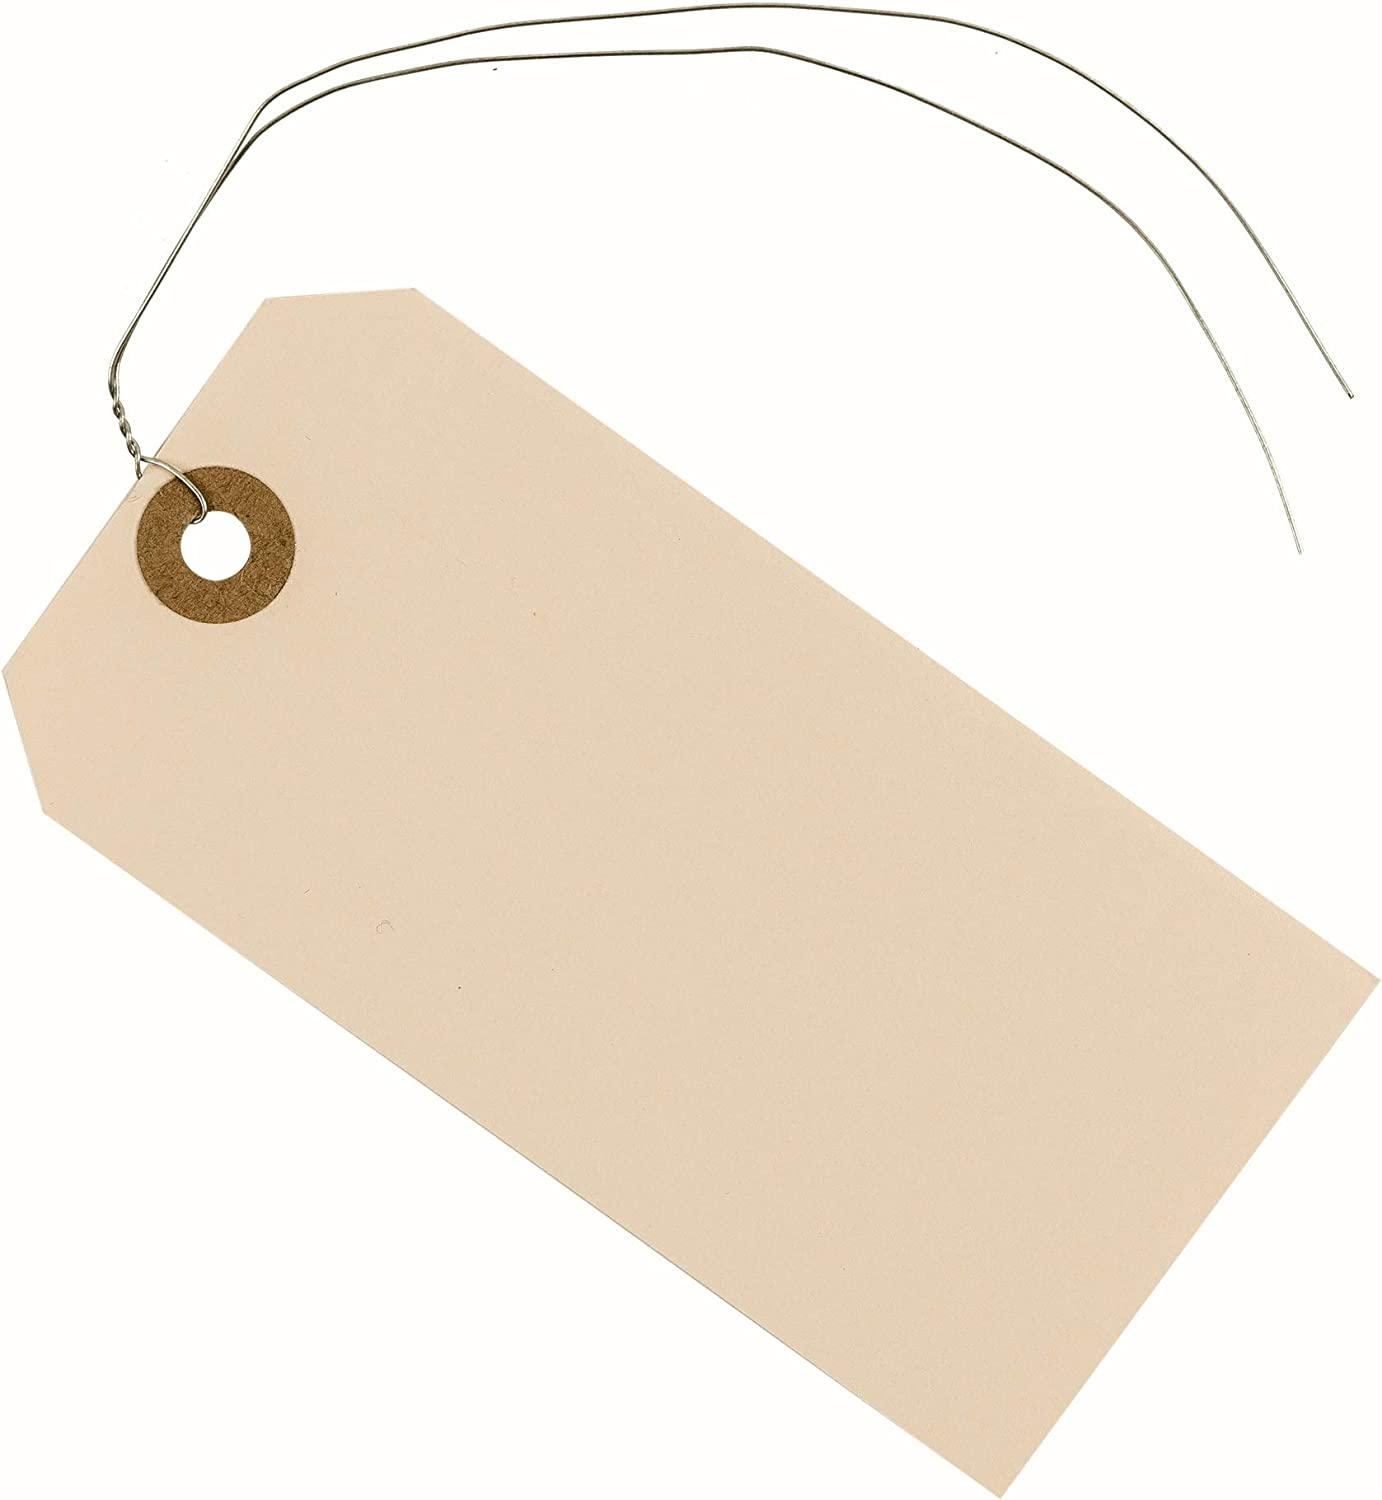 "Manila Paper Tags with Wire Attached 4 3/4"" x 2 3/8"" (12 x 6 cm) Box of 100 Blank Shipping Tags Wired with Reinforced Hole and Metal Wire Ties"